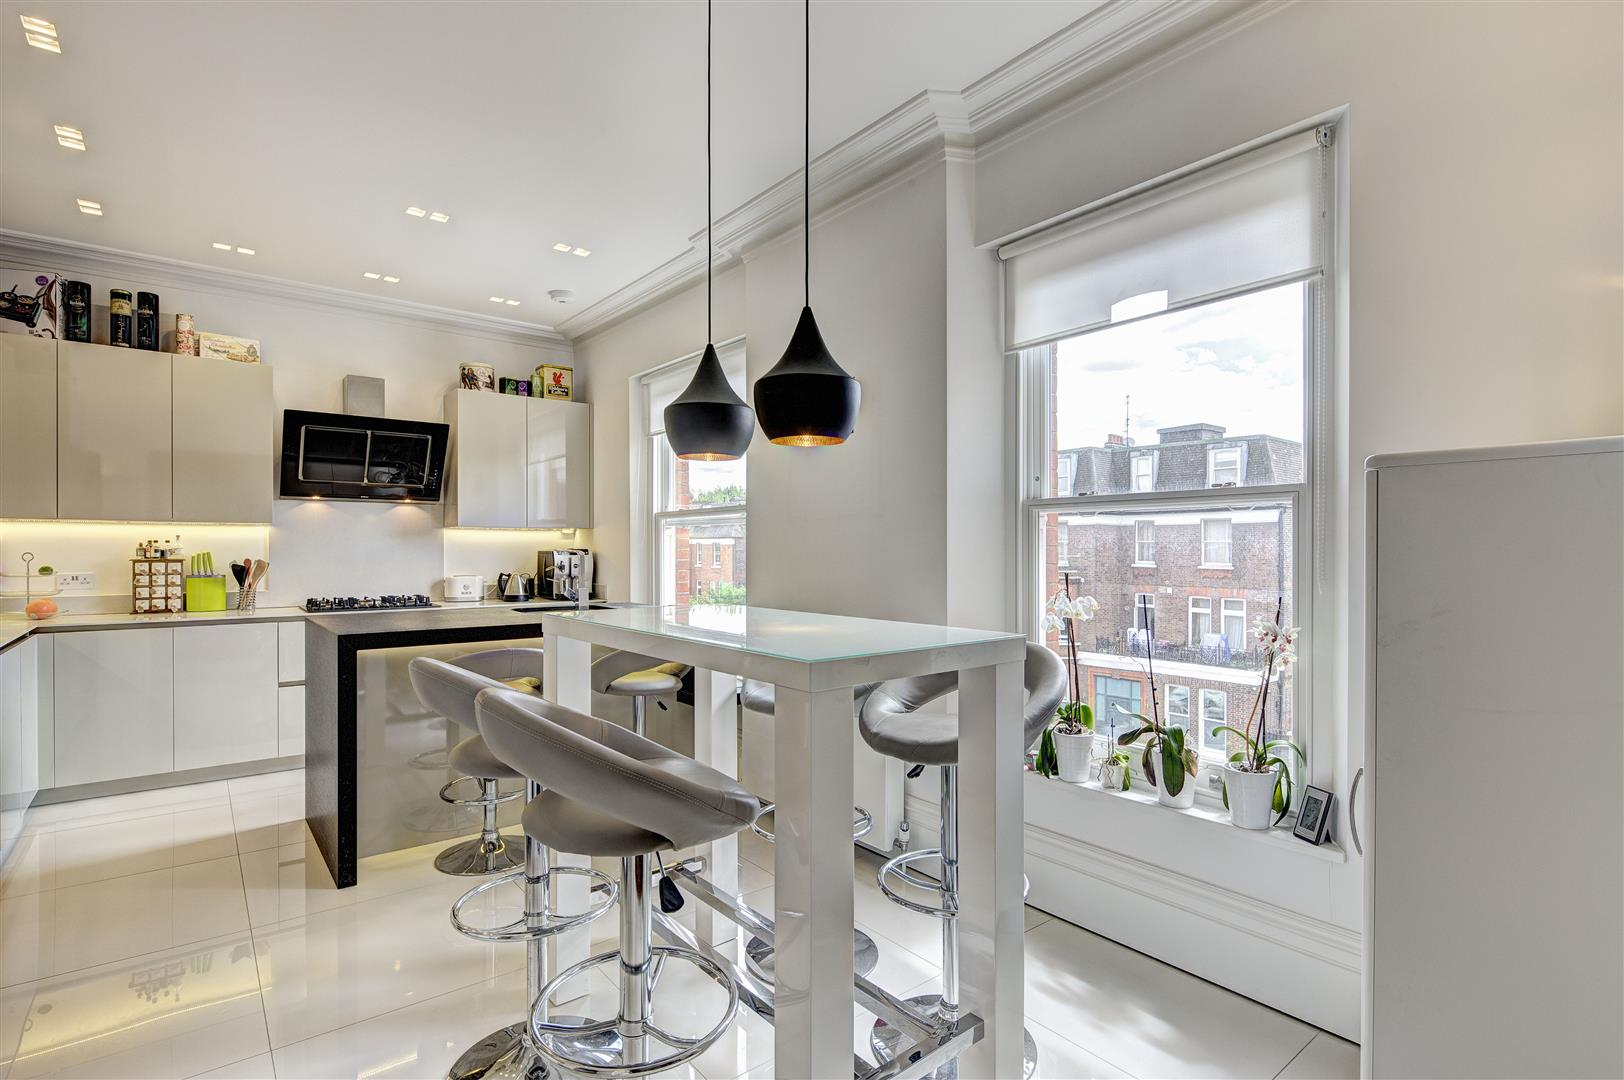 3 Bedrooms Flat for sale in Canfield Gardens, South Hampstead, NW6